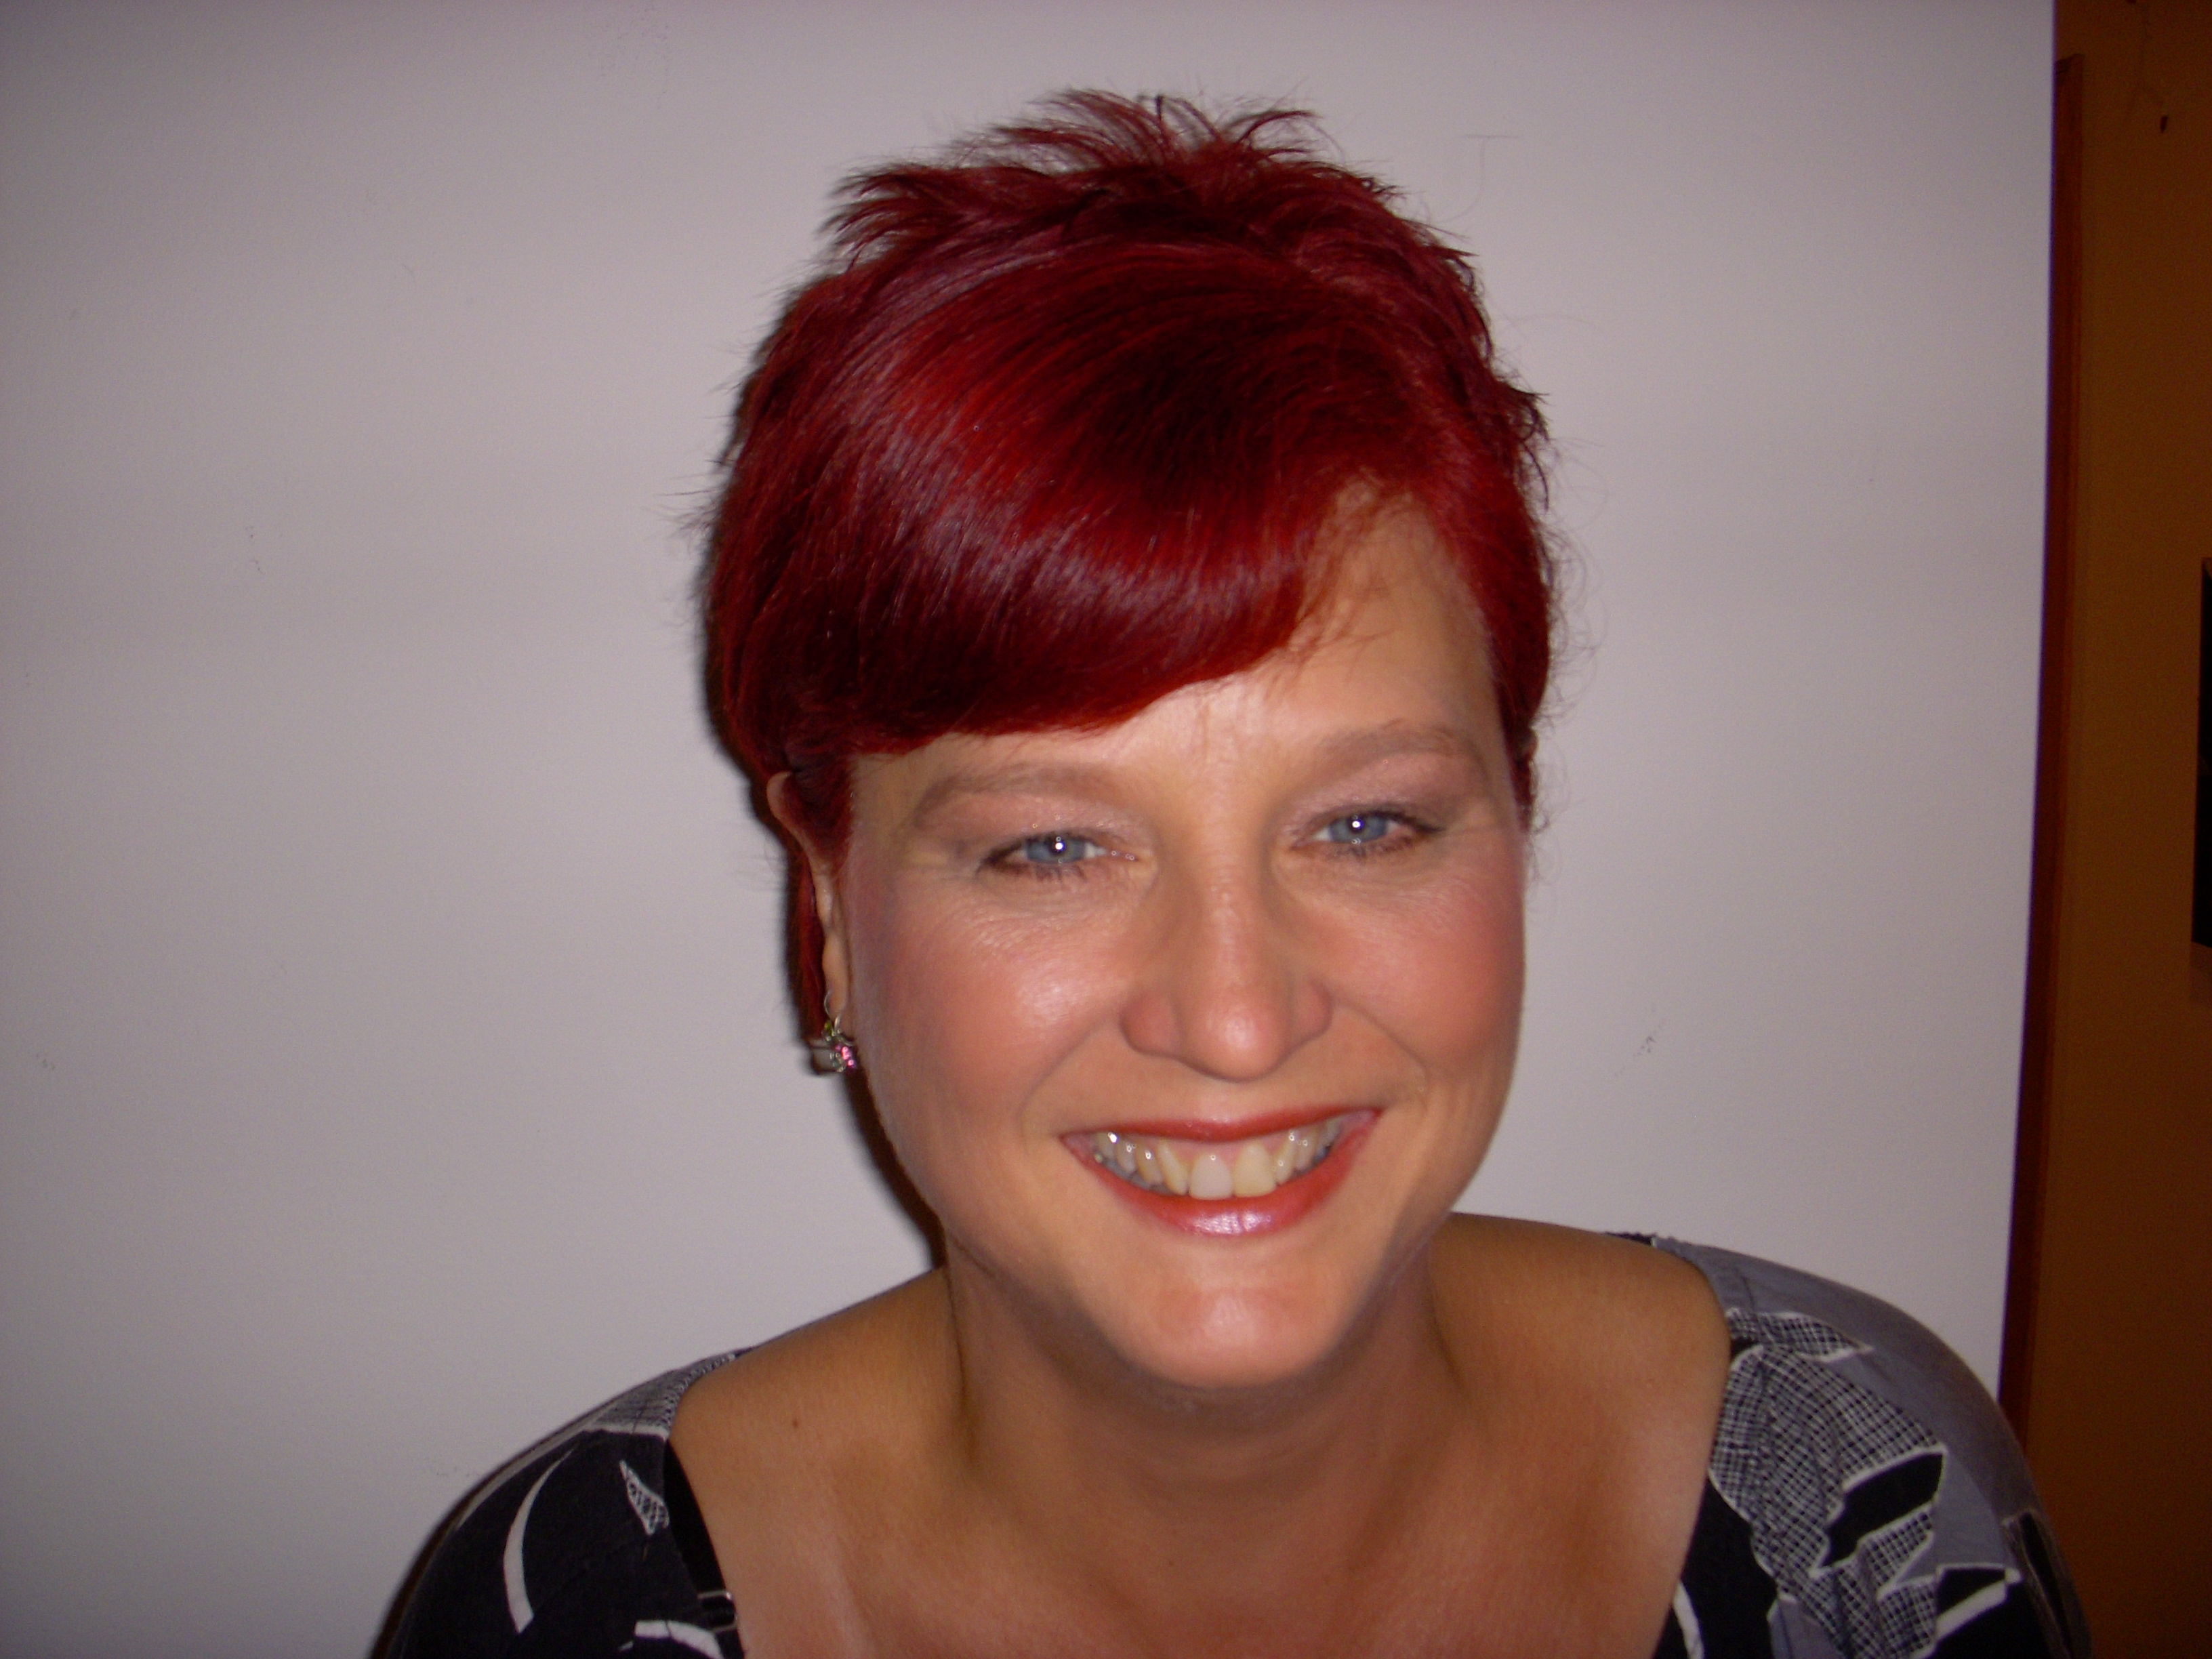 Karin Allers-The Red Head